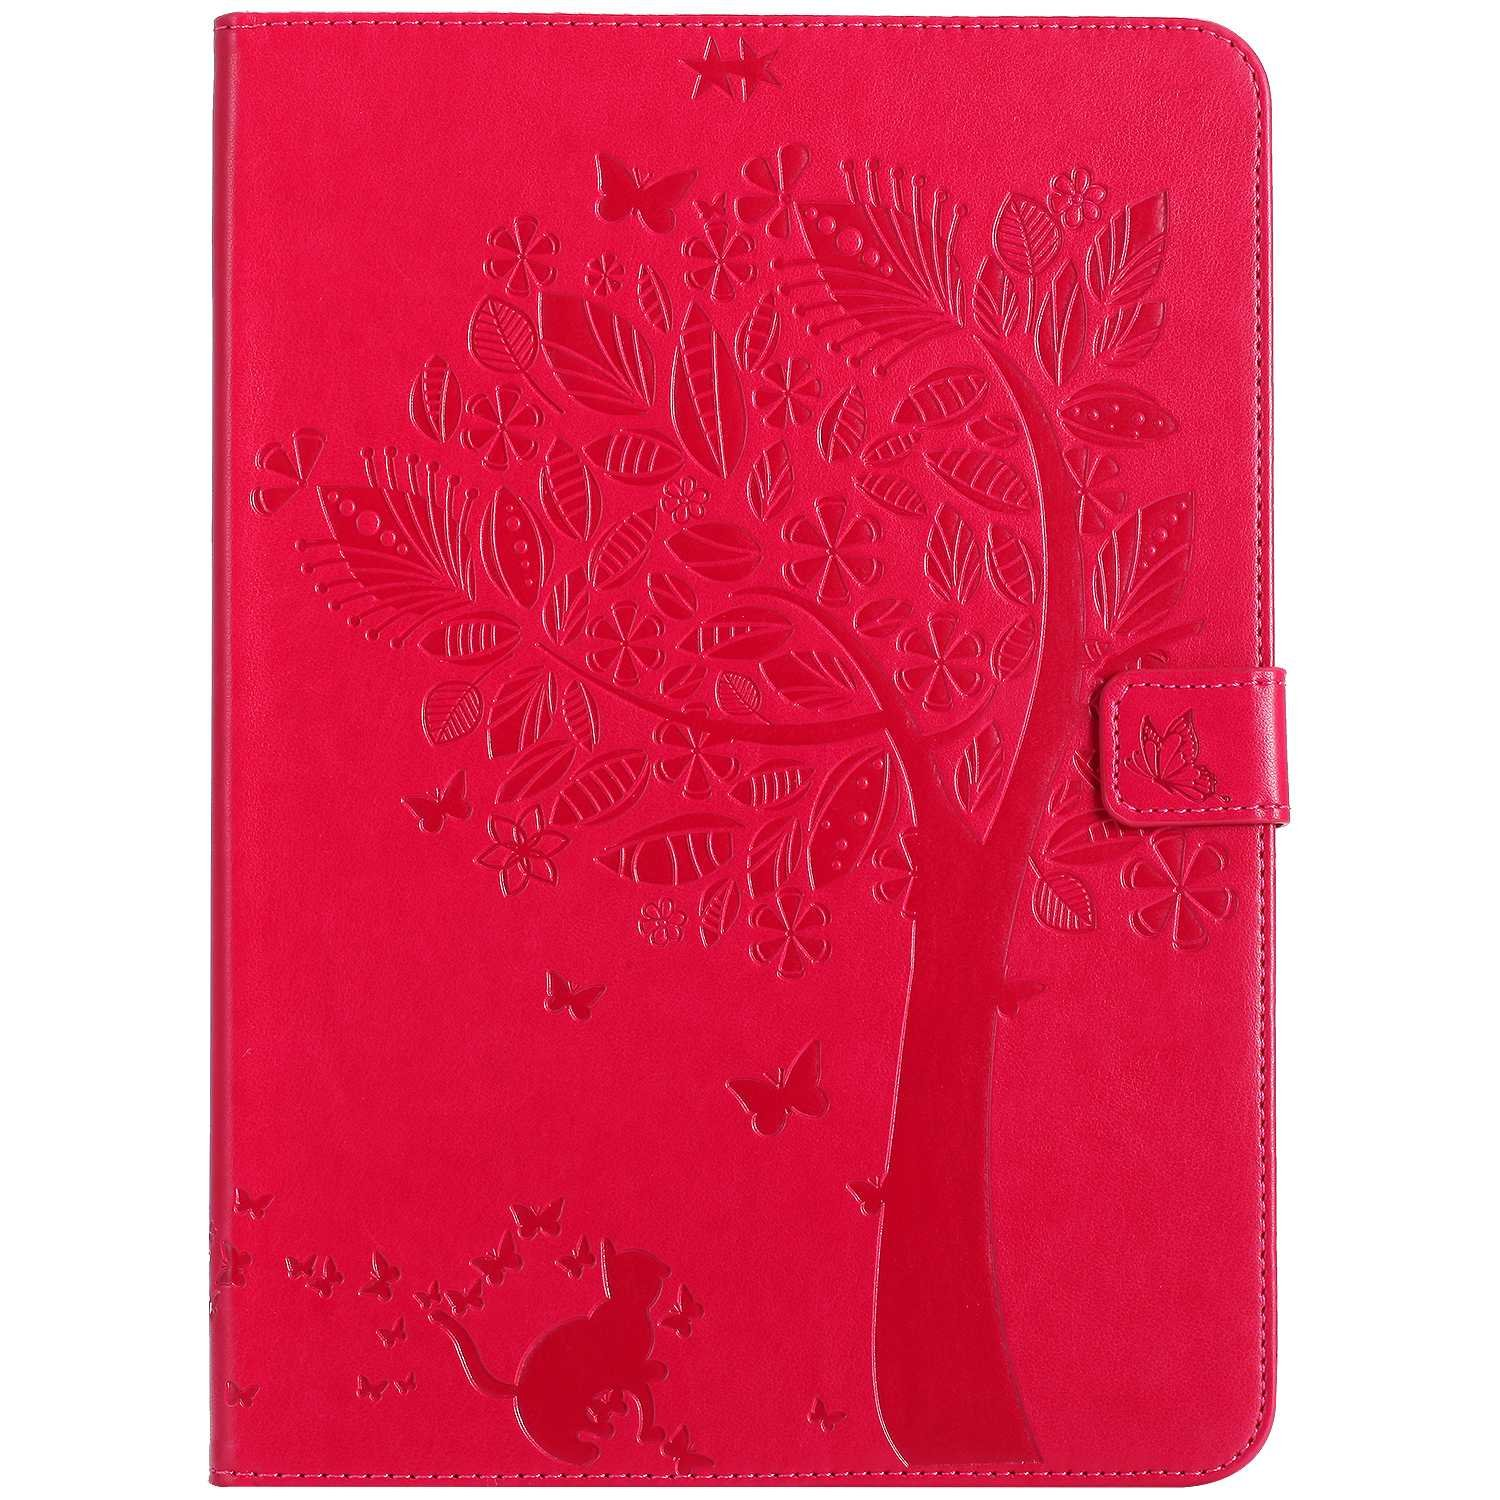 Bear Village iPad 2017 / iPad 2018 (9.7 Inch) Case, Leather Magnetic Case, Fullbody Protective Cover with Stand Function for Apple iPad 2017 / iPad 2018 (9.7 Inch), Red